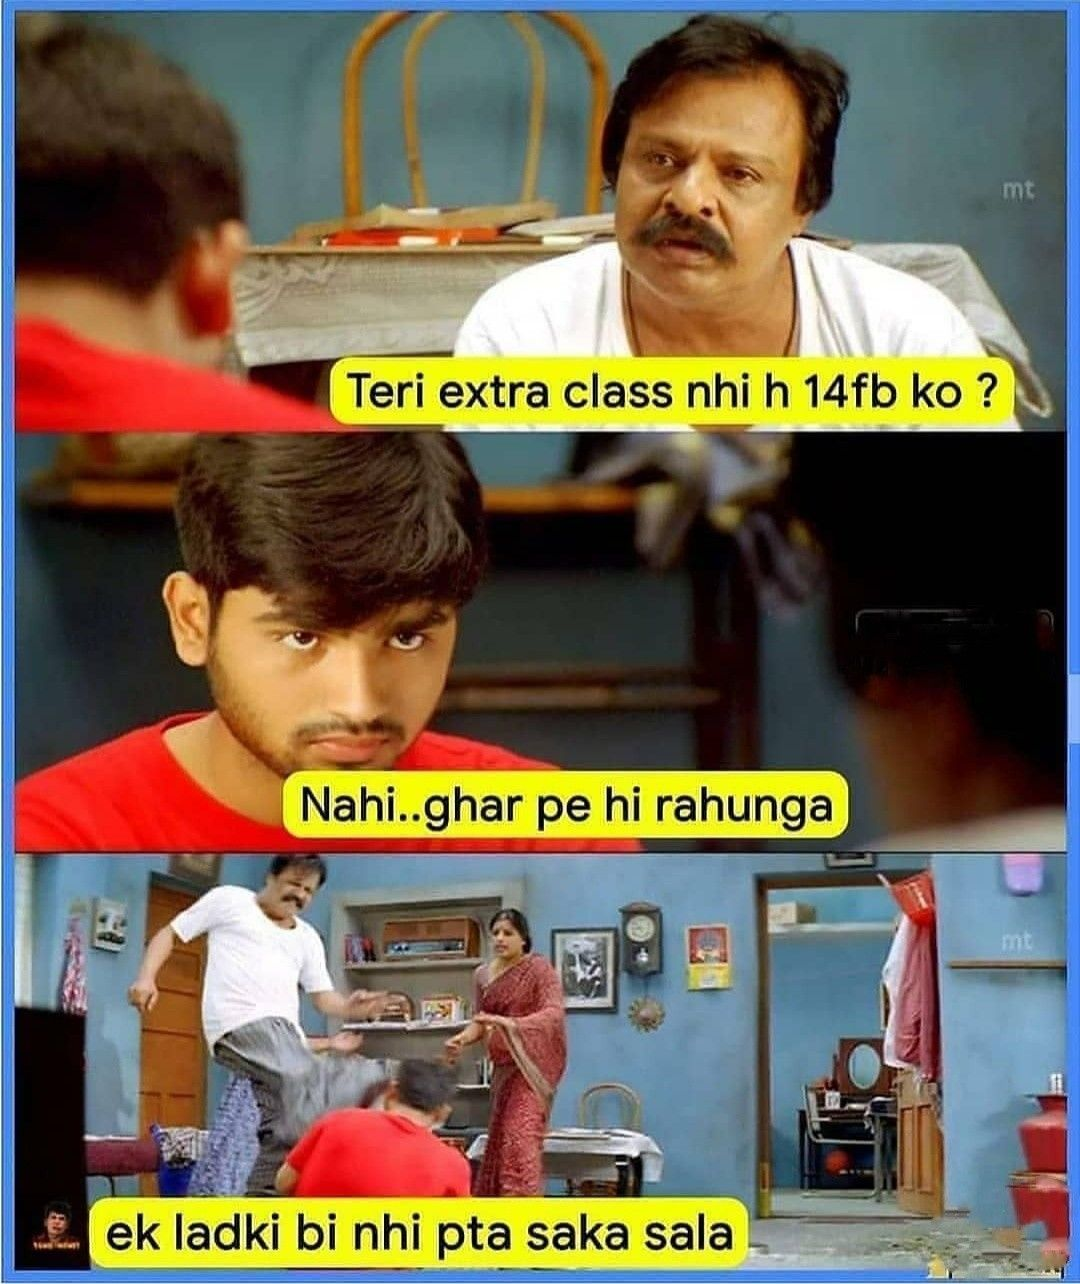 Pin By The Qu33n On Thoda Funny Thoda Filmy In 2021 Funny Valentine Memes Valentines Day Jokes Valentines Day Memes